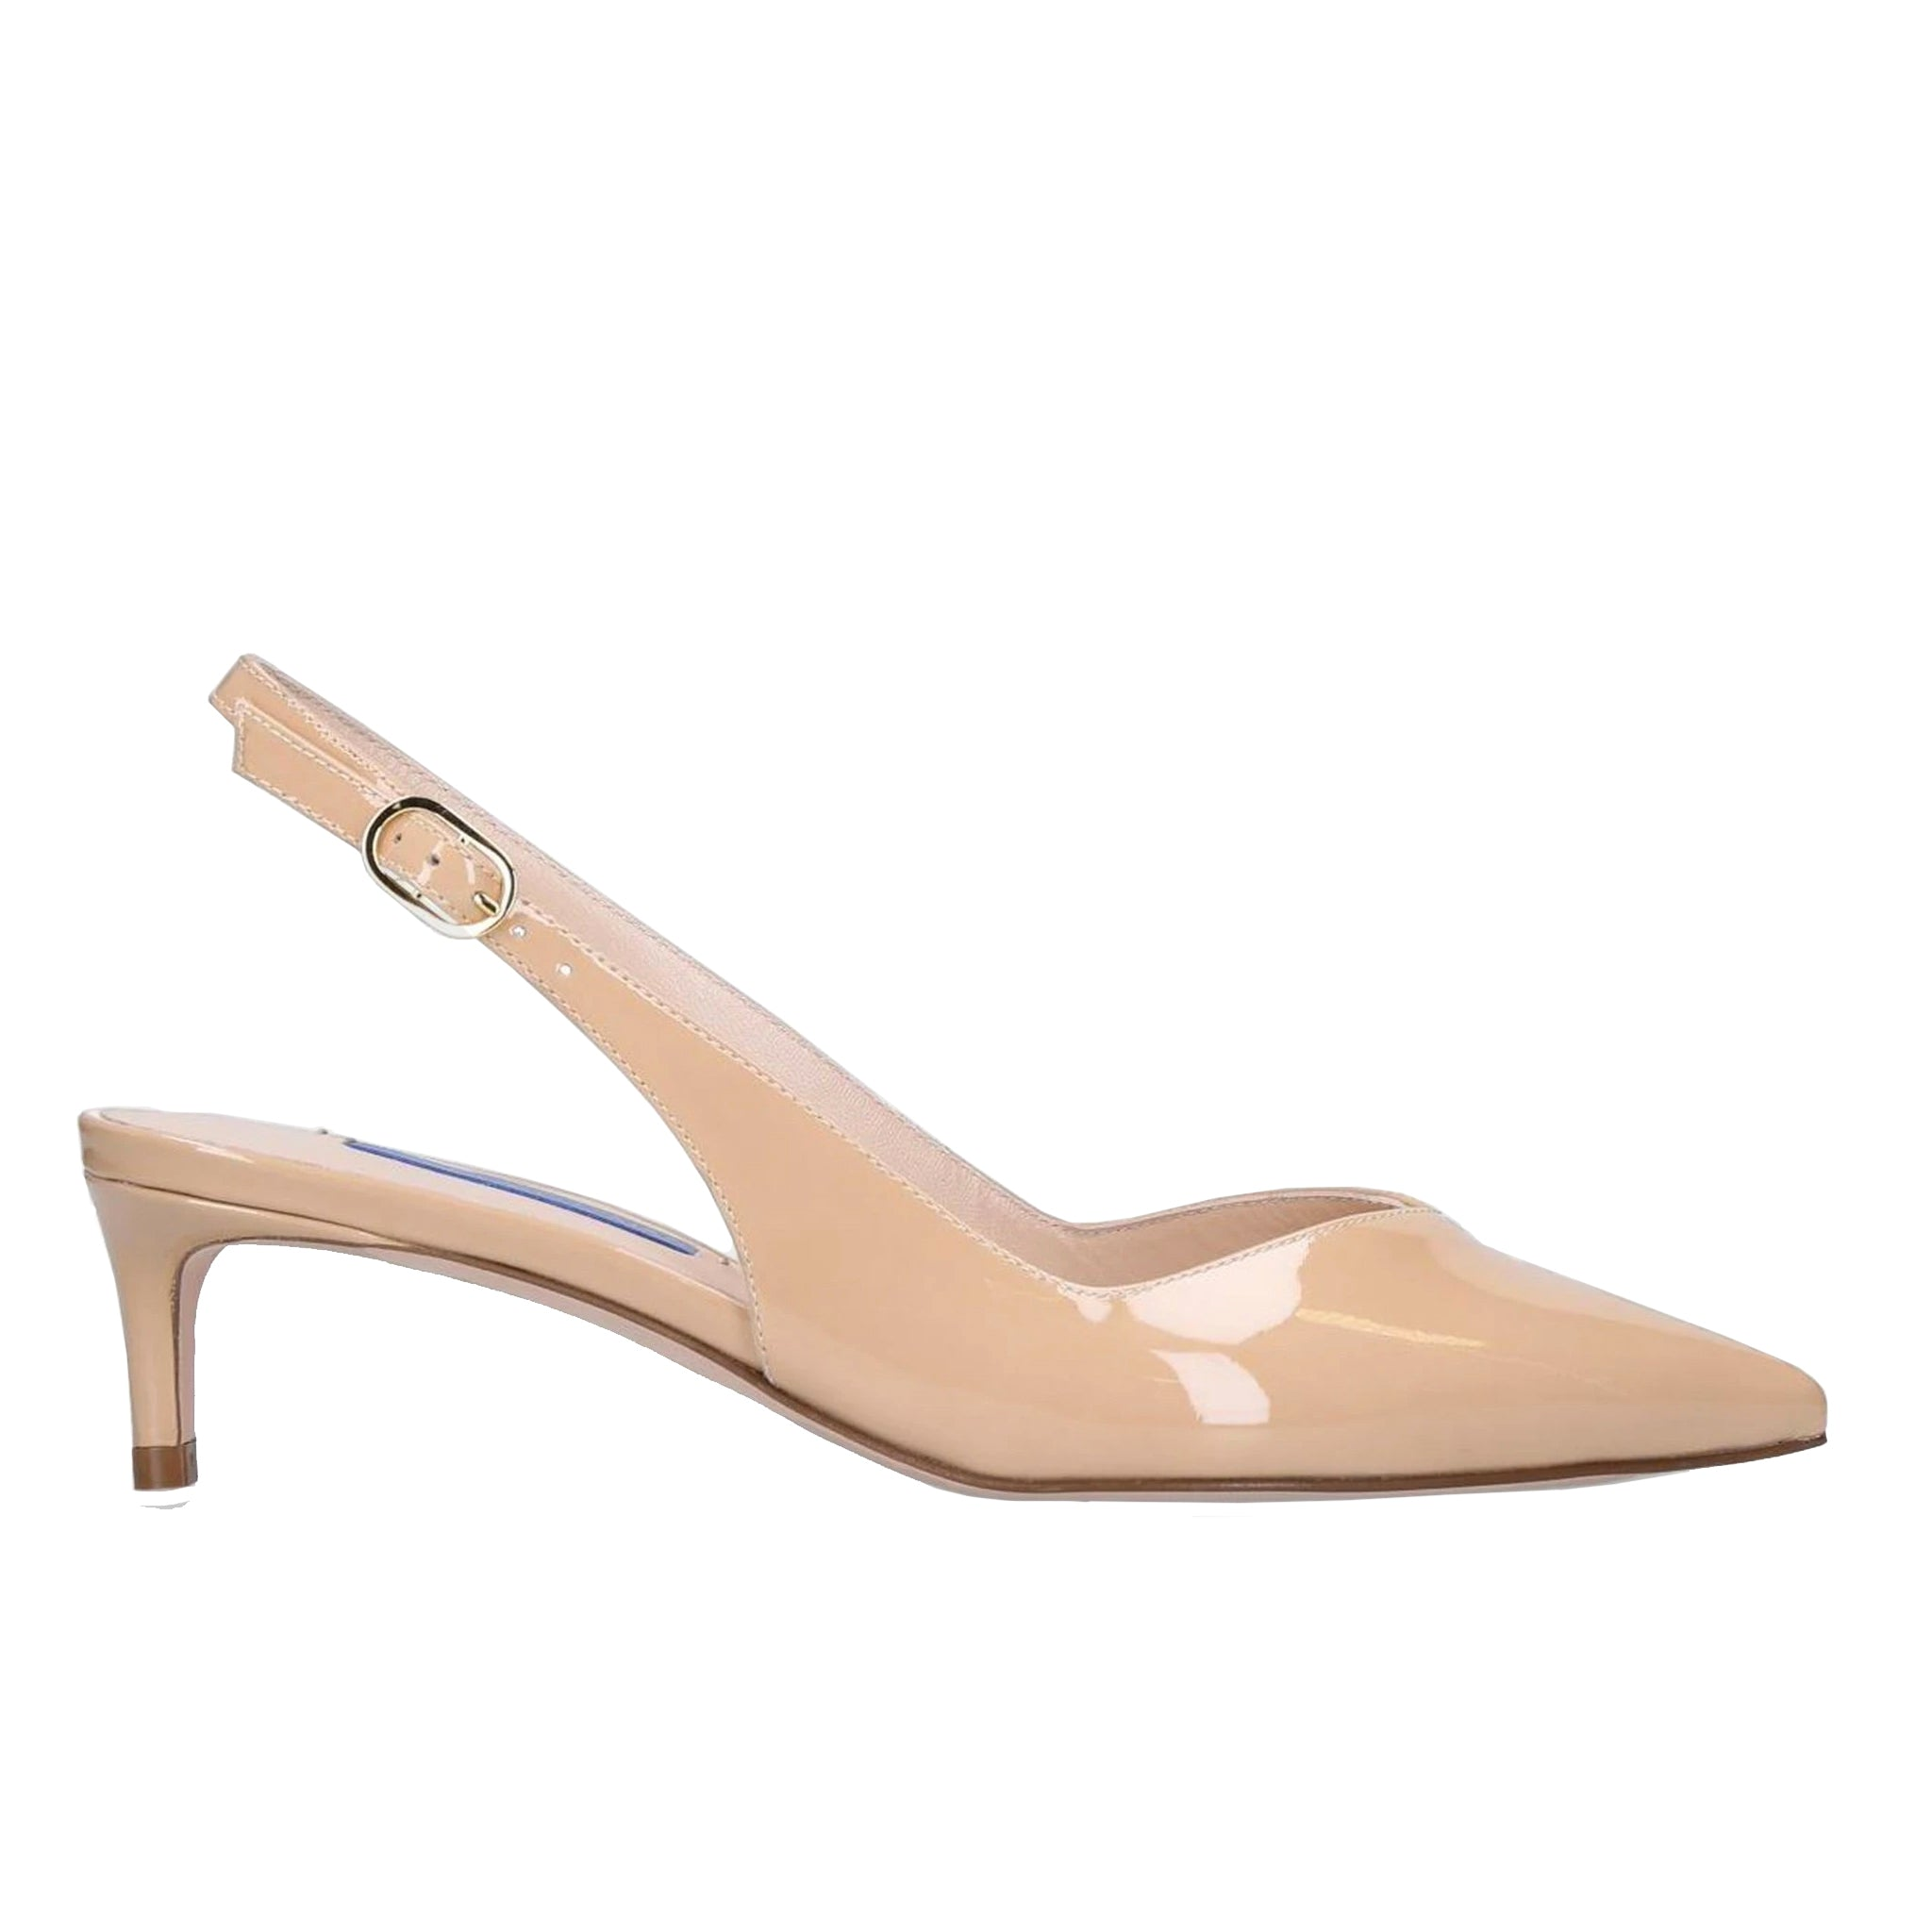 Stuart Weitzman Slingback Leather Pumps